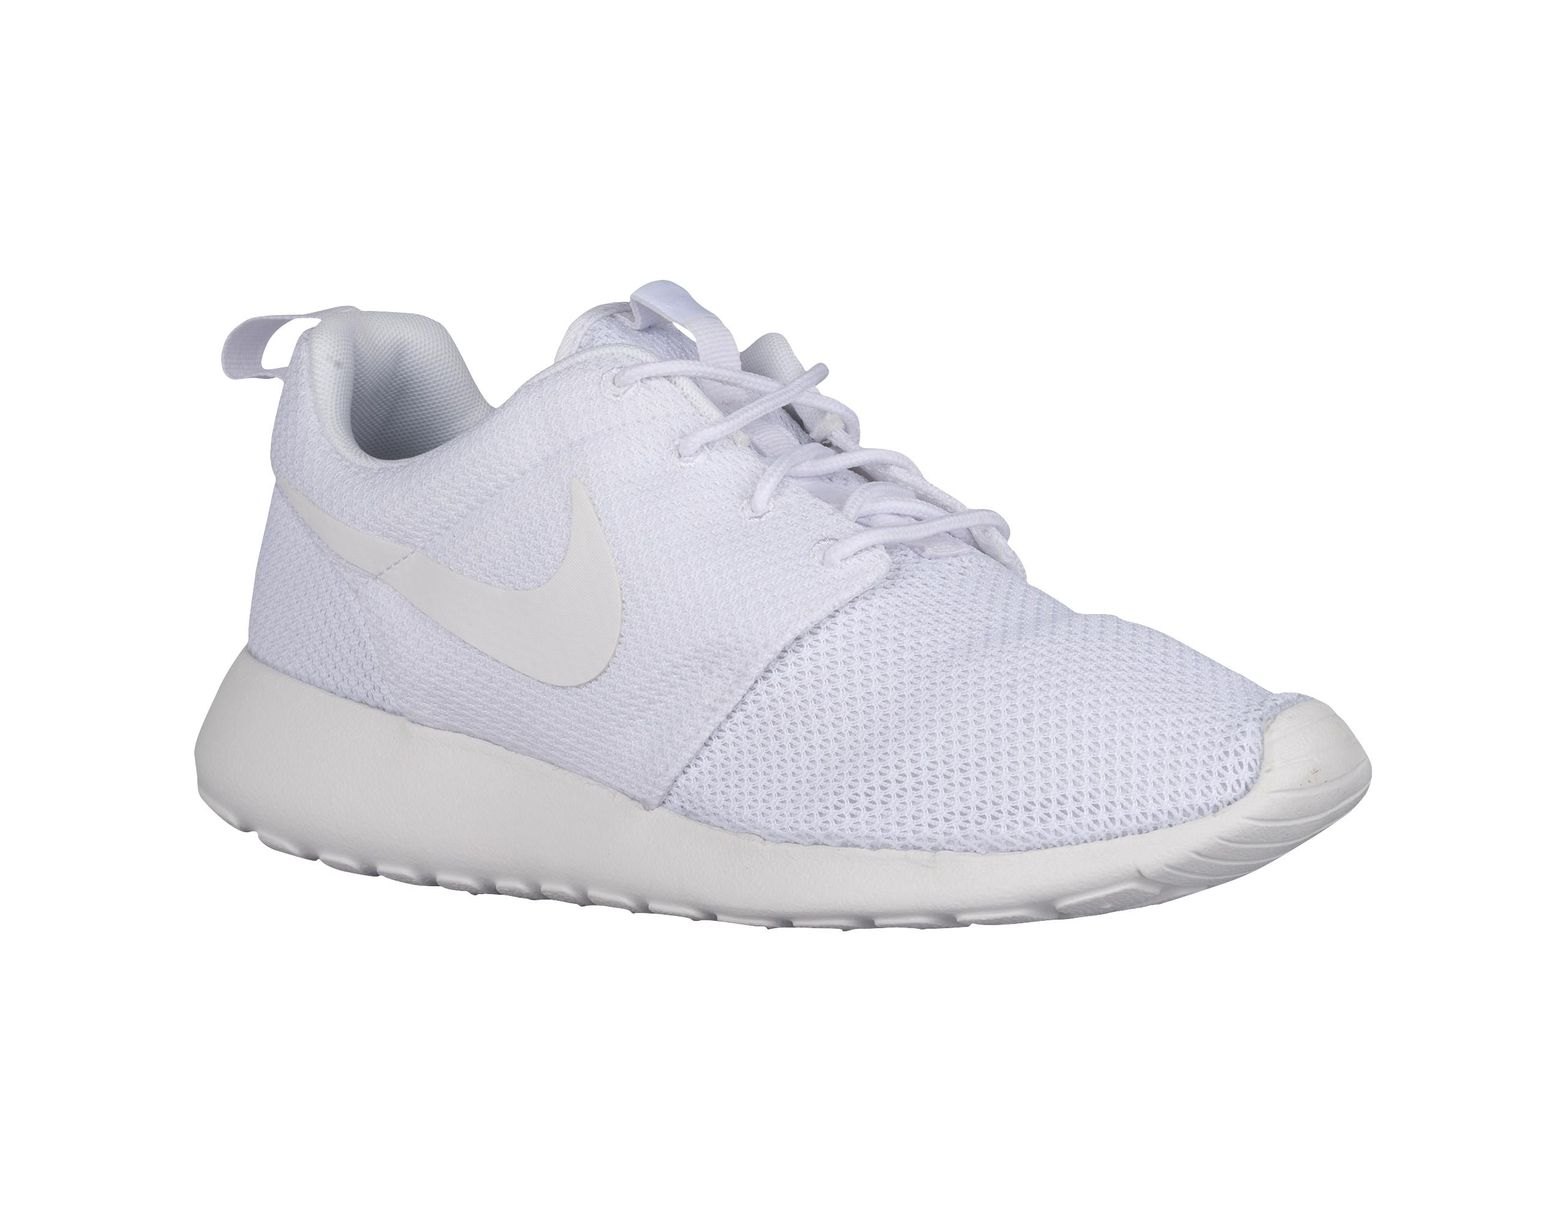 sale retailer f4a91 23a4f Nike - White Roshe One Running Shoes for Men - Lyst